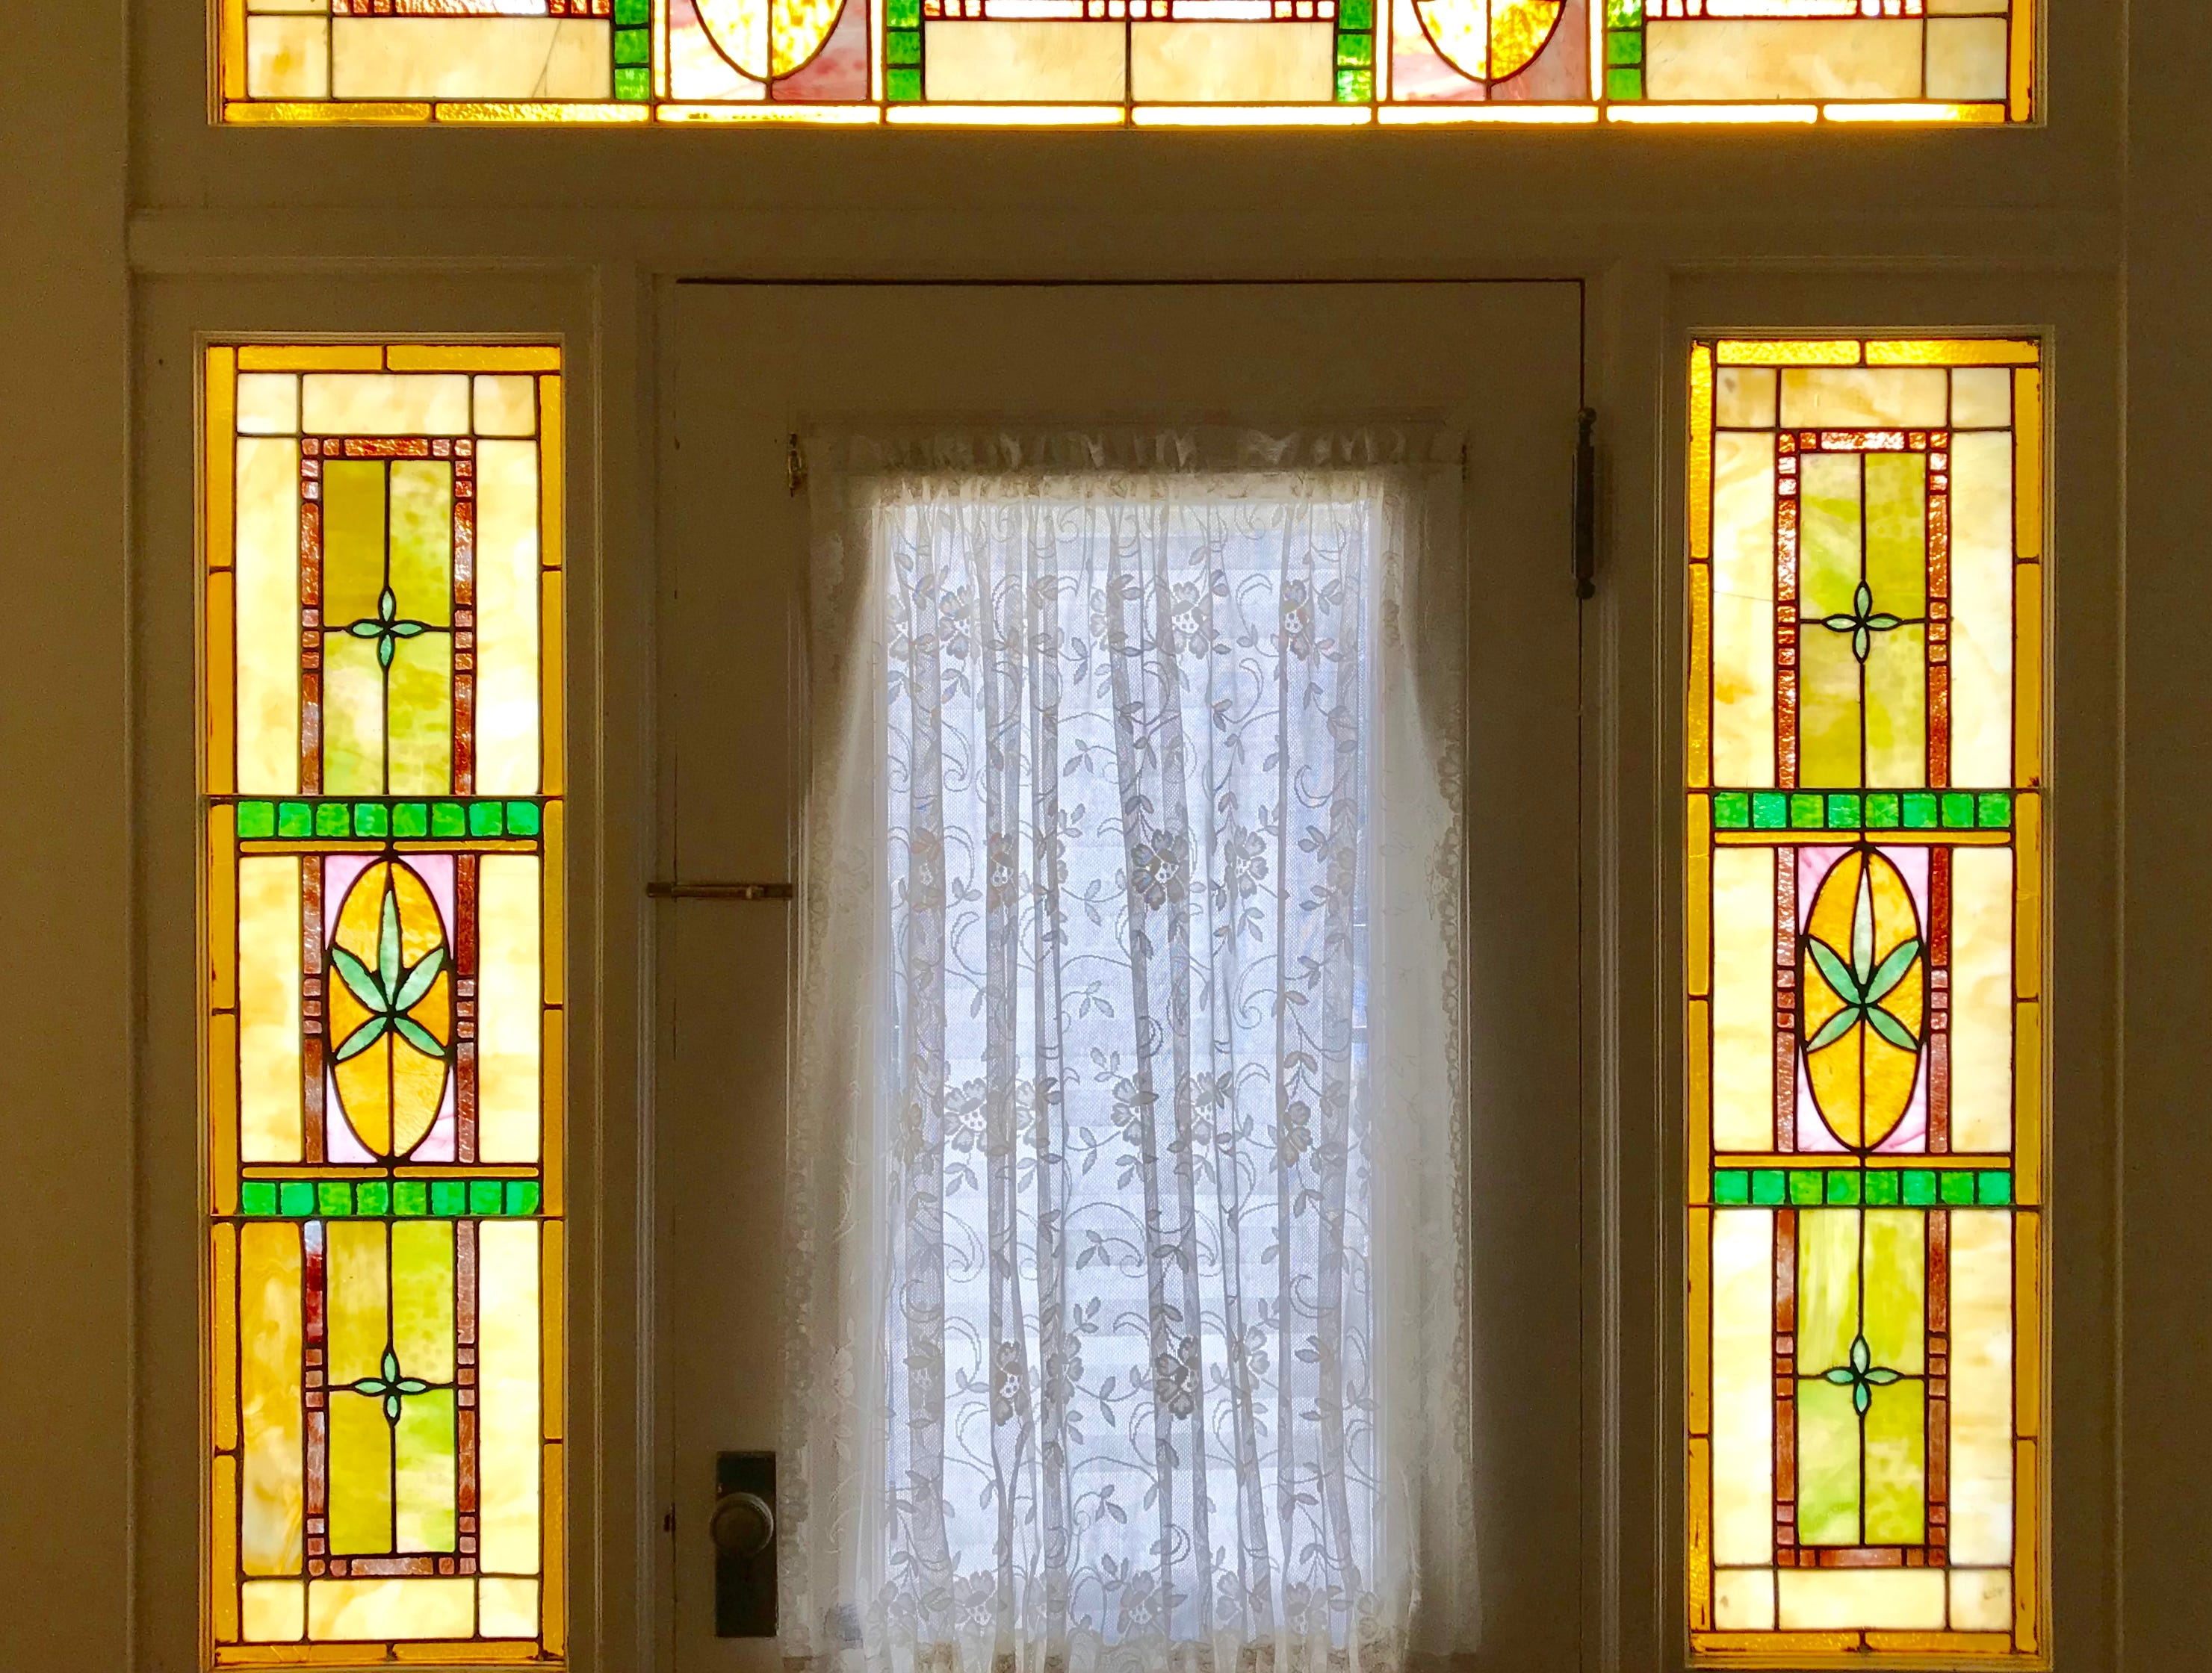 The Elfindale Mansion is a bed and breakfast with 13 bedrooms. This second-story room has beautiful stained glass and a walk-out deck.